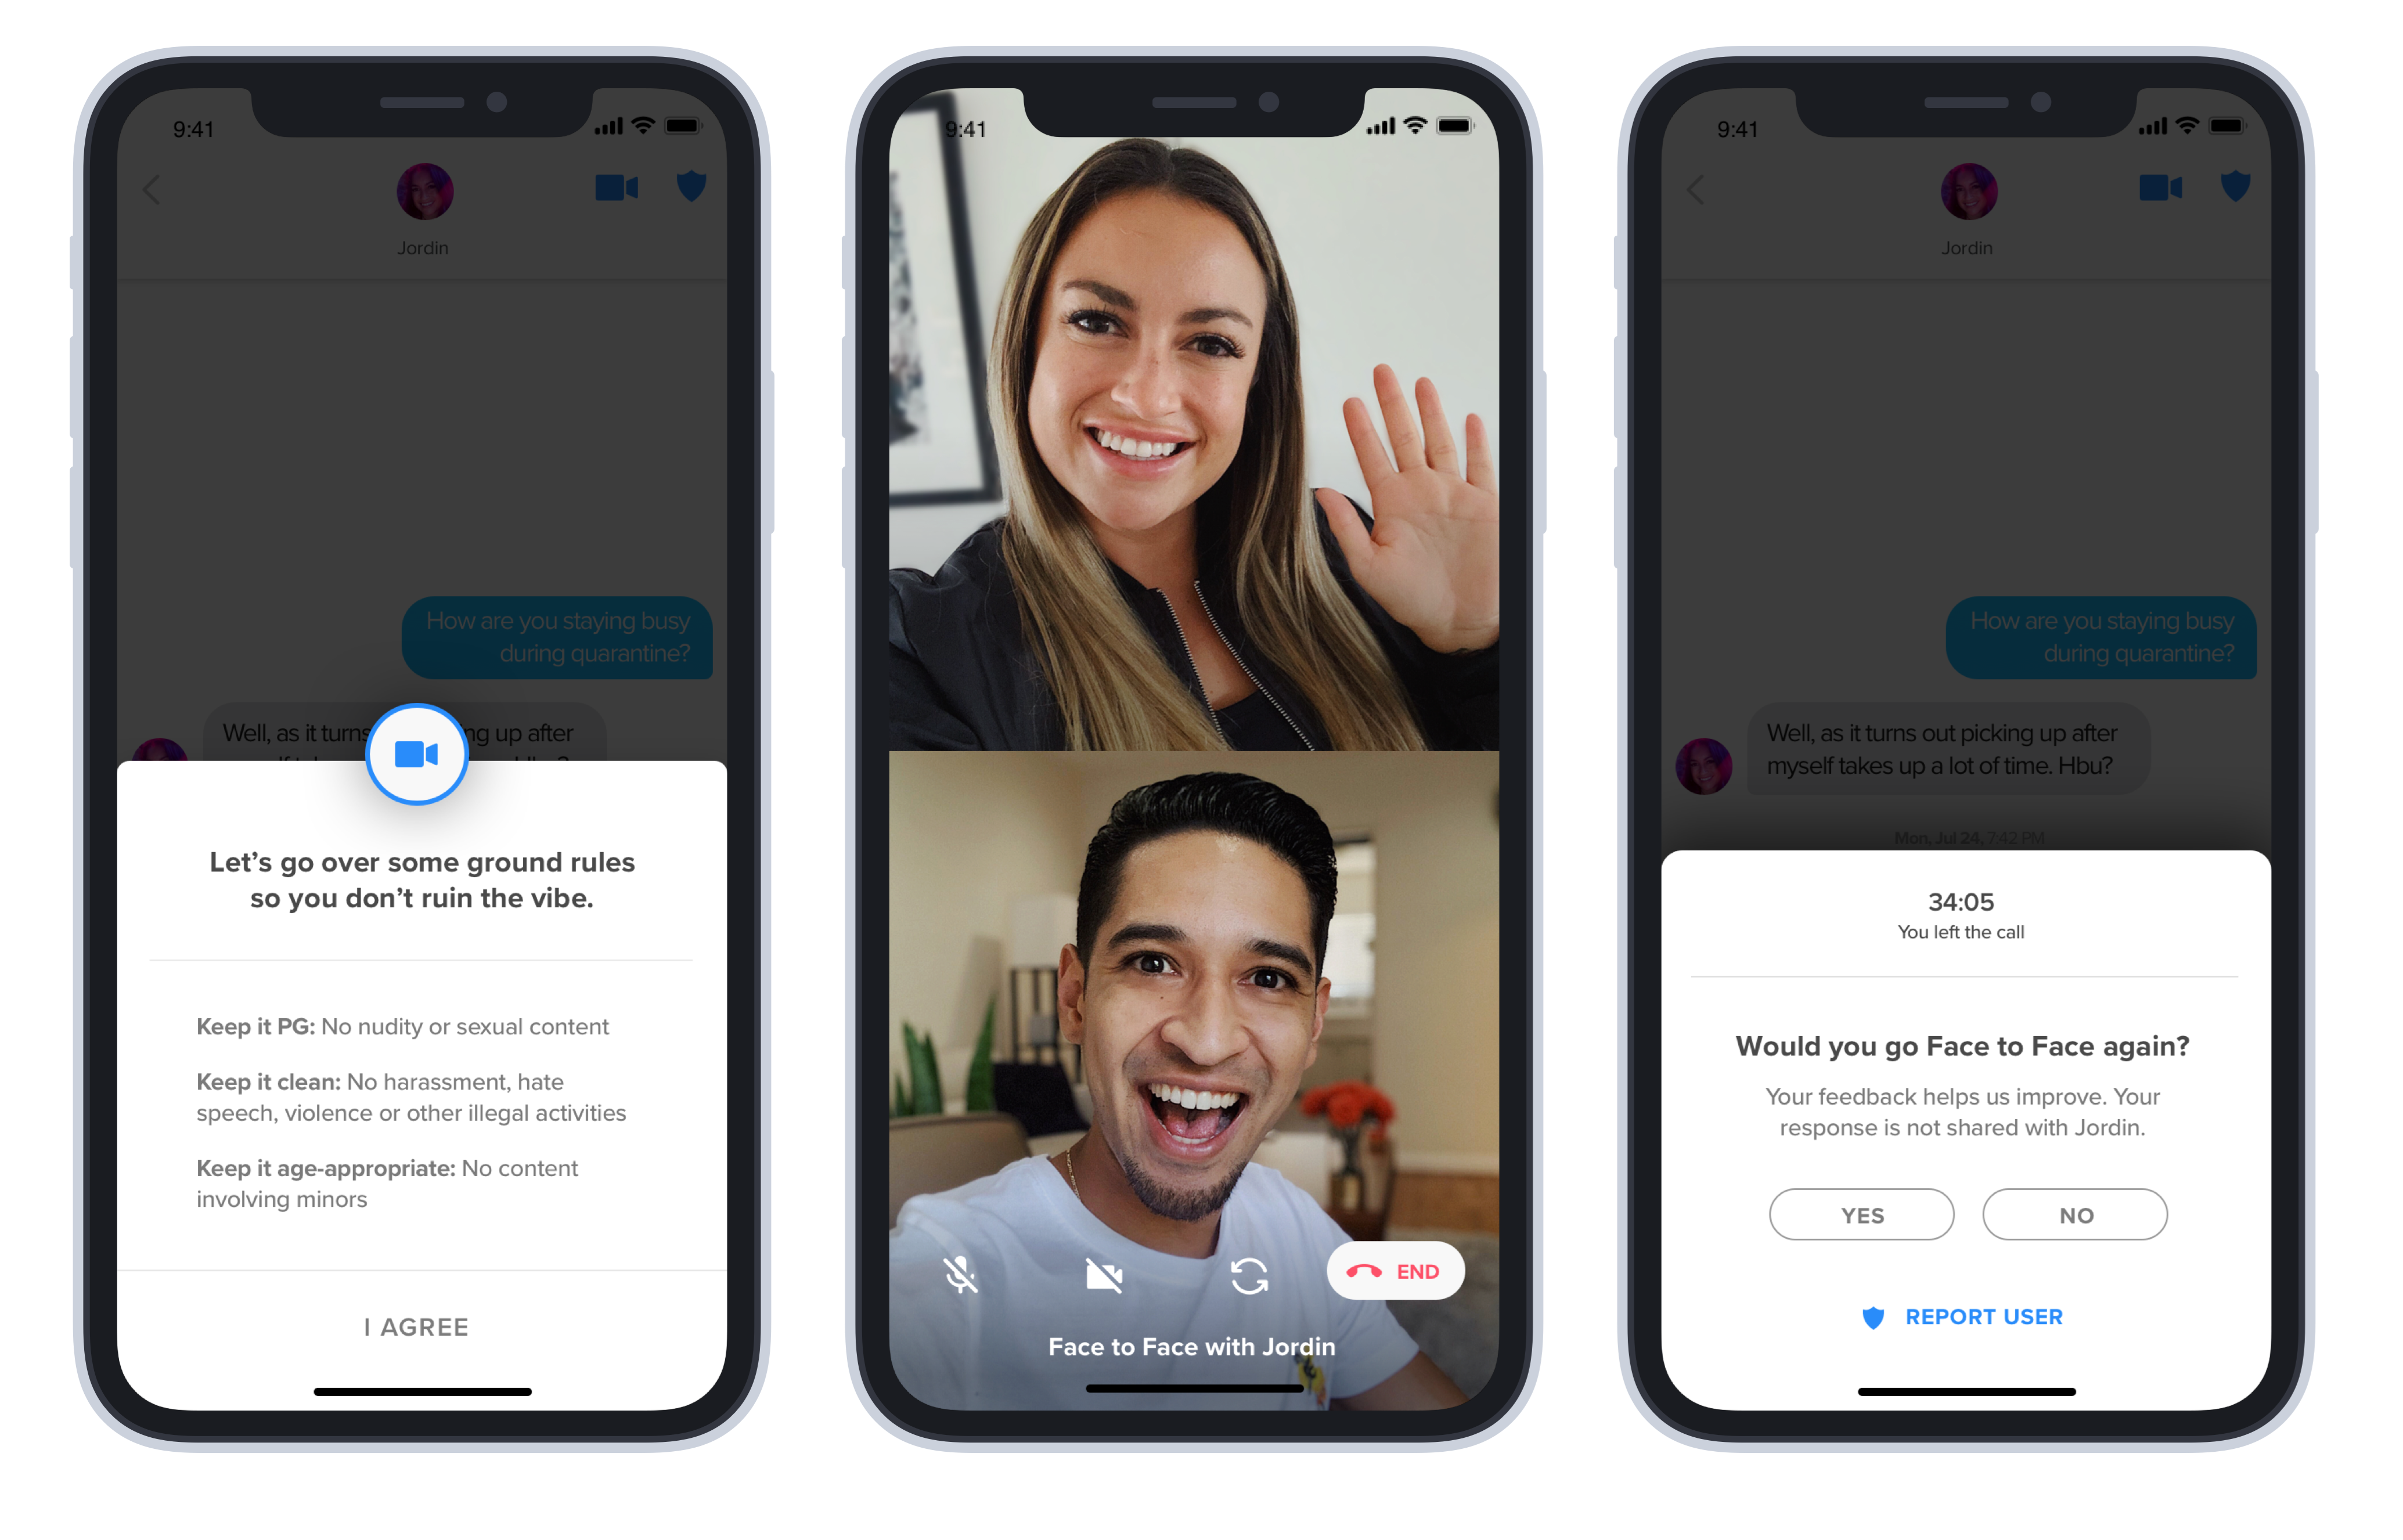 Tinder Begins Testing on Live Video Feature 'Face to Face'